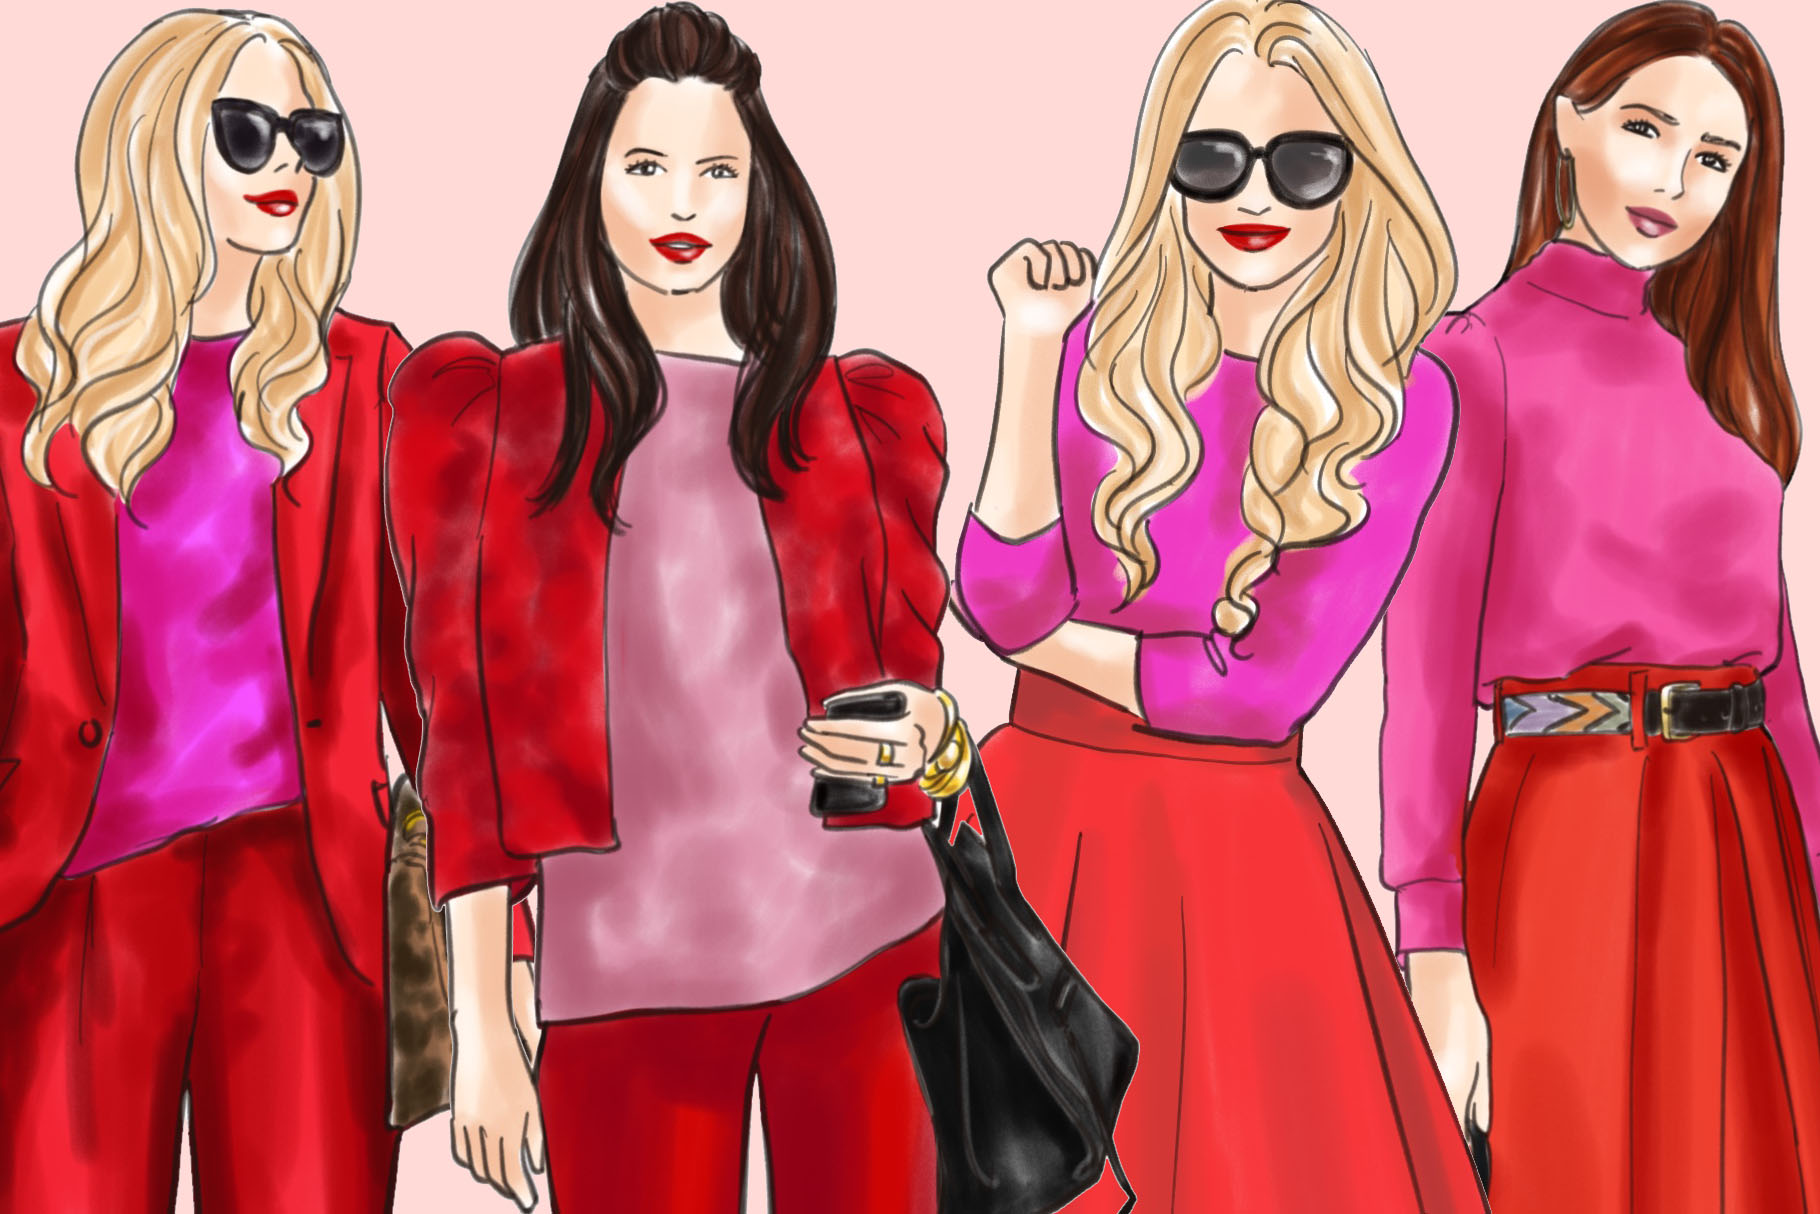 Fashion illustration clipart - Girls in Red and Pink - Light example image 3